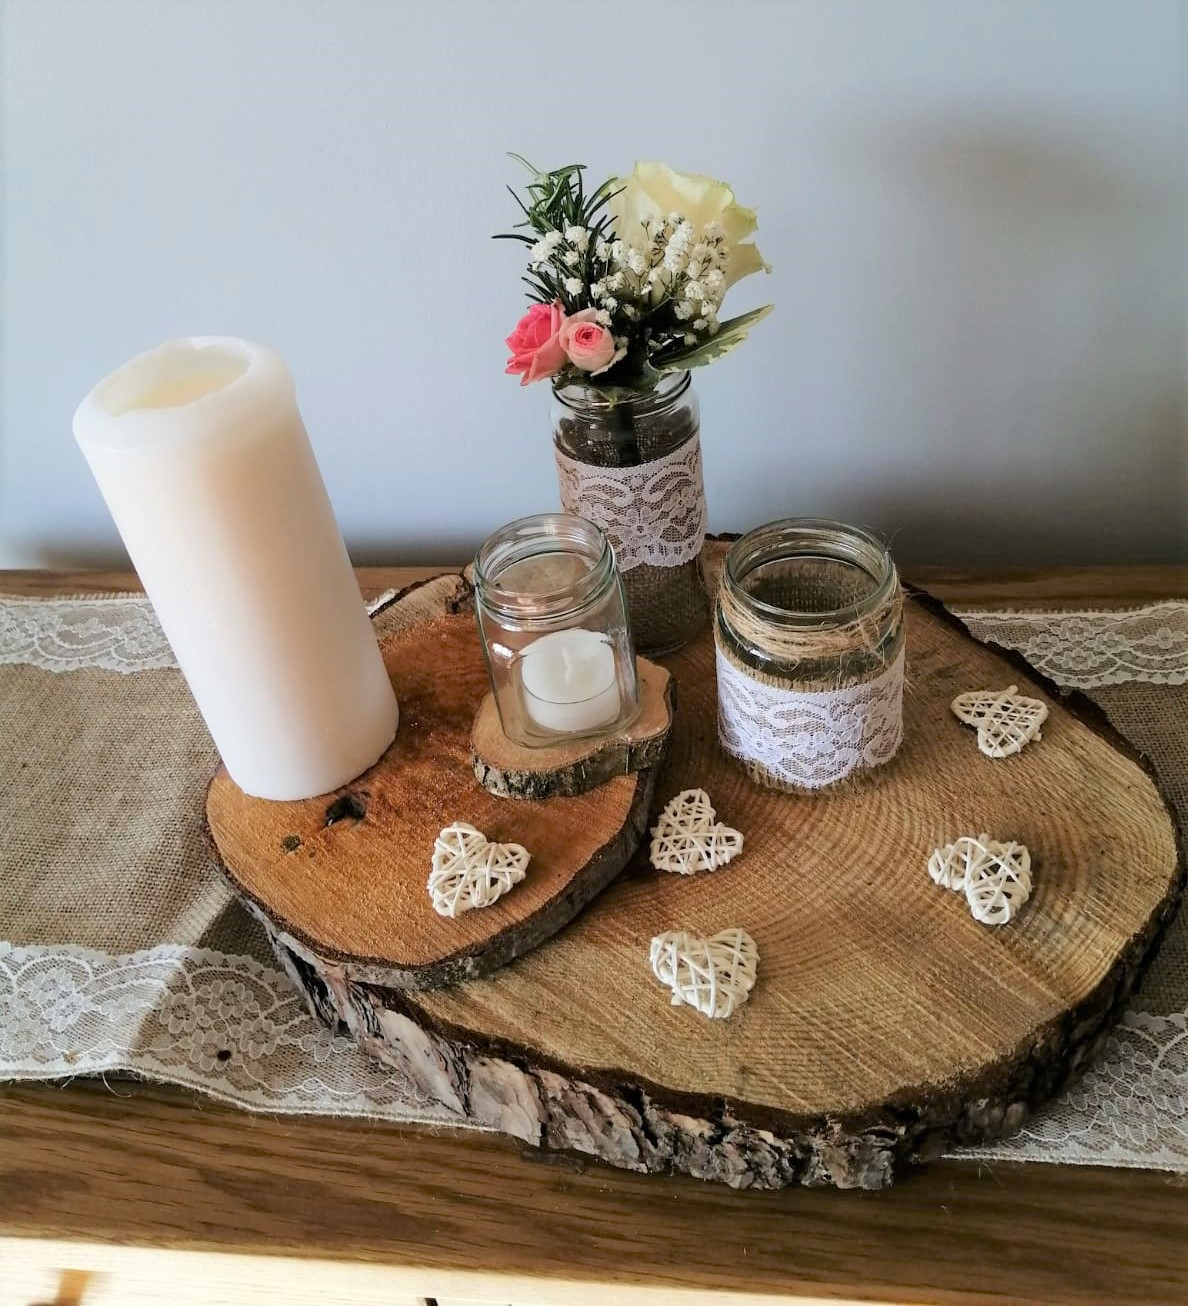 Rustic wedding centrepiece with logs, jars, candles and flowers, hessian and lace